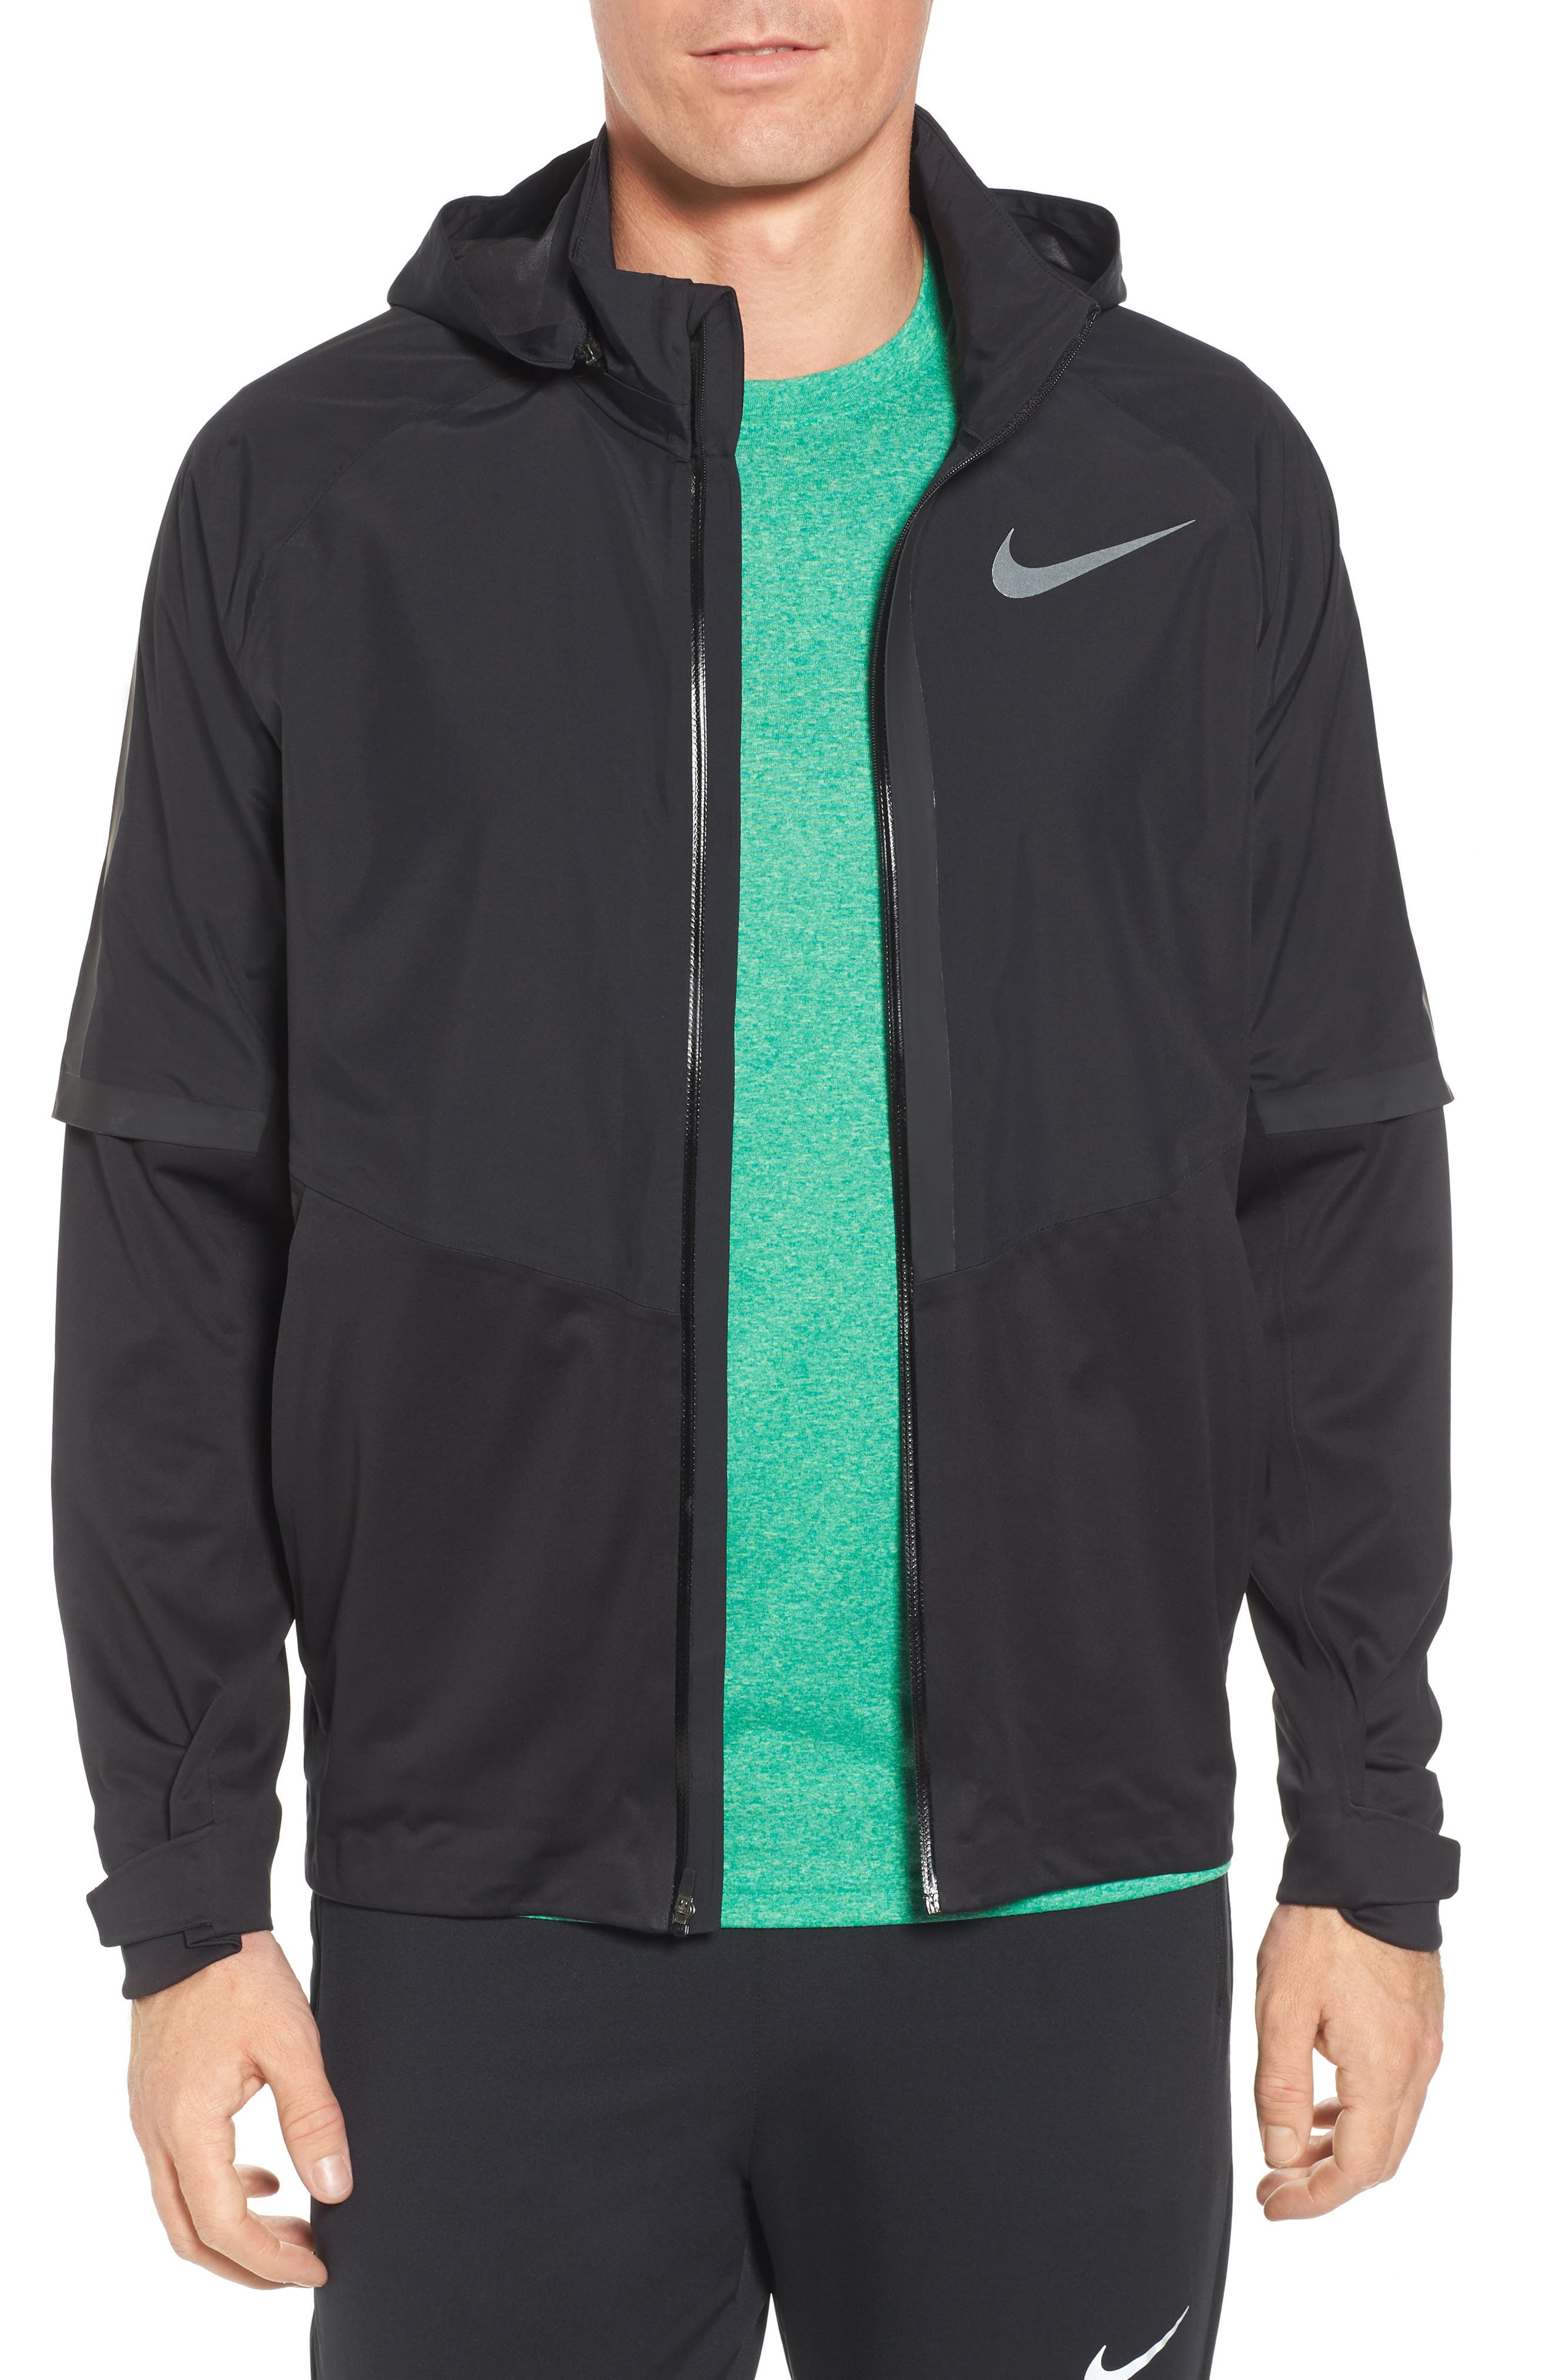 Nike AeroShield Running Jacket